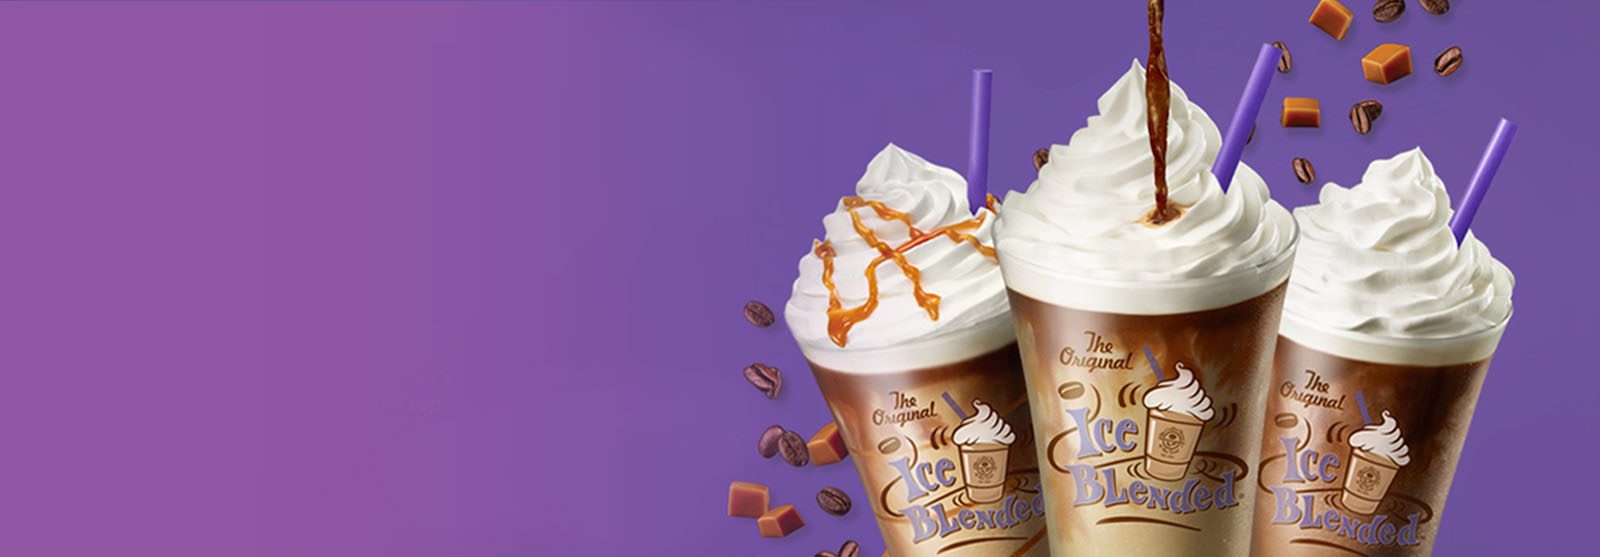 Coffee Bean & Tea Leaf (CBTL) ECommerce website